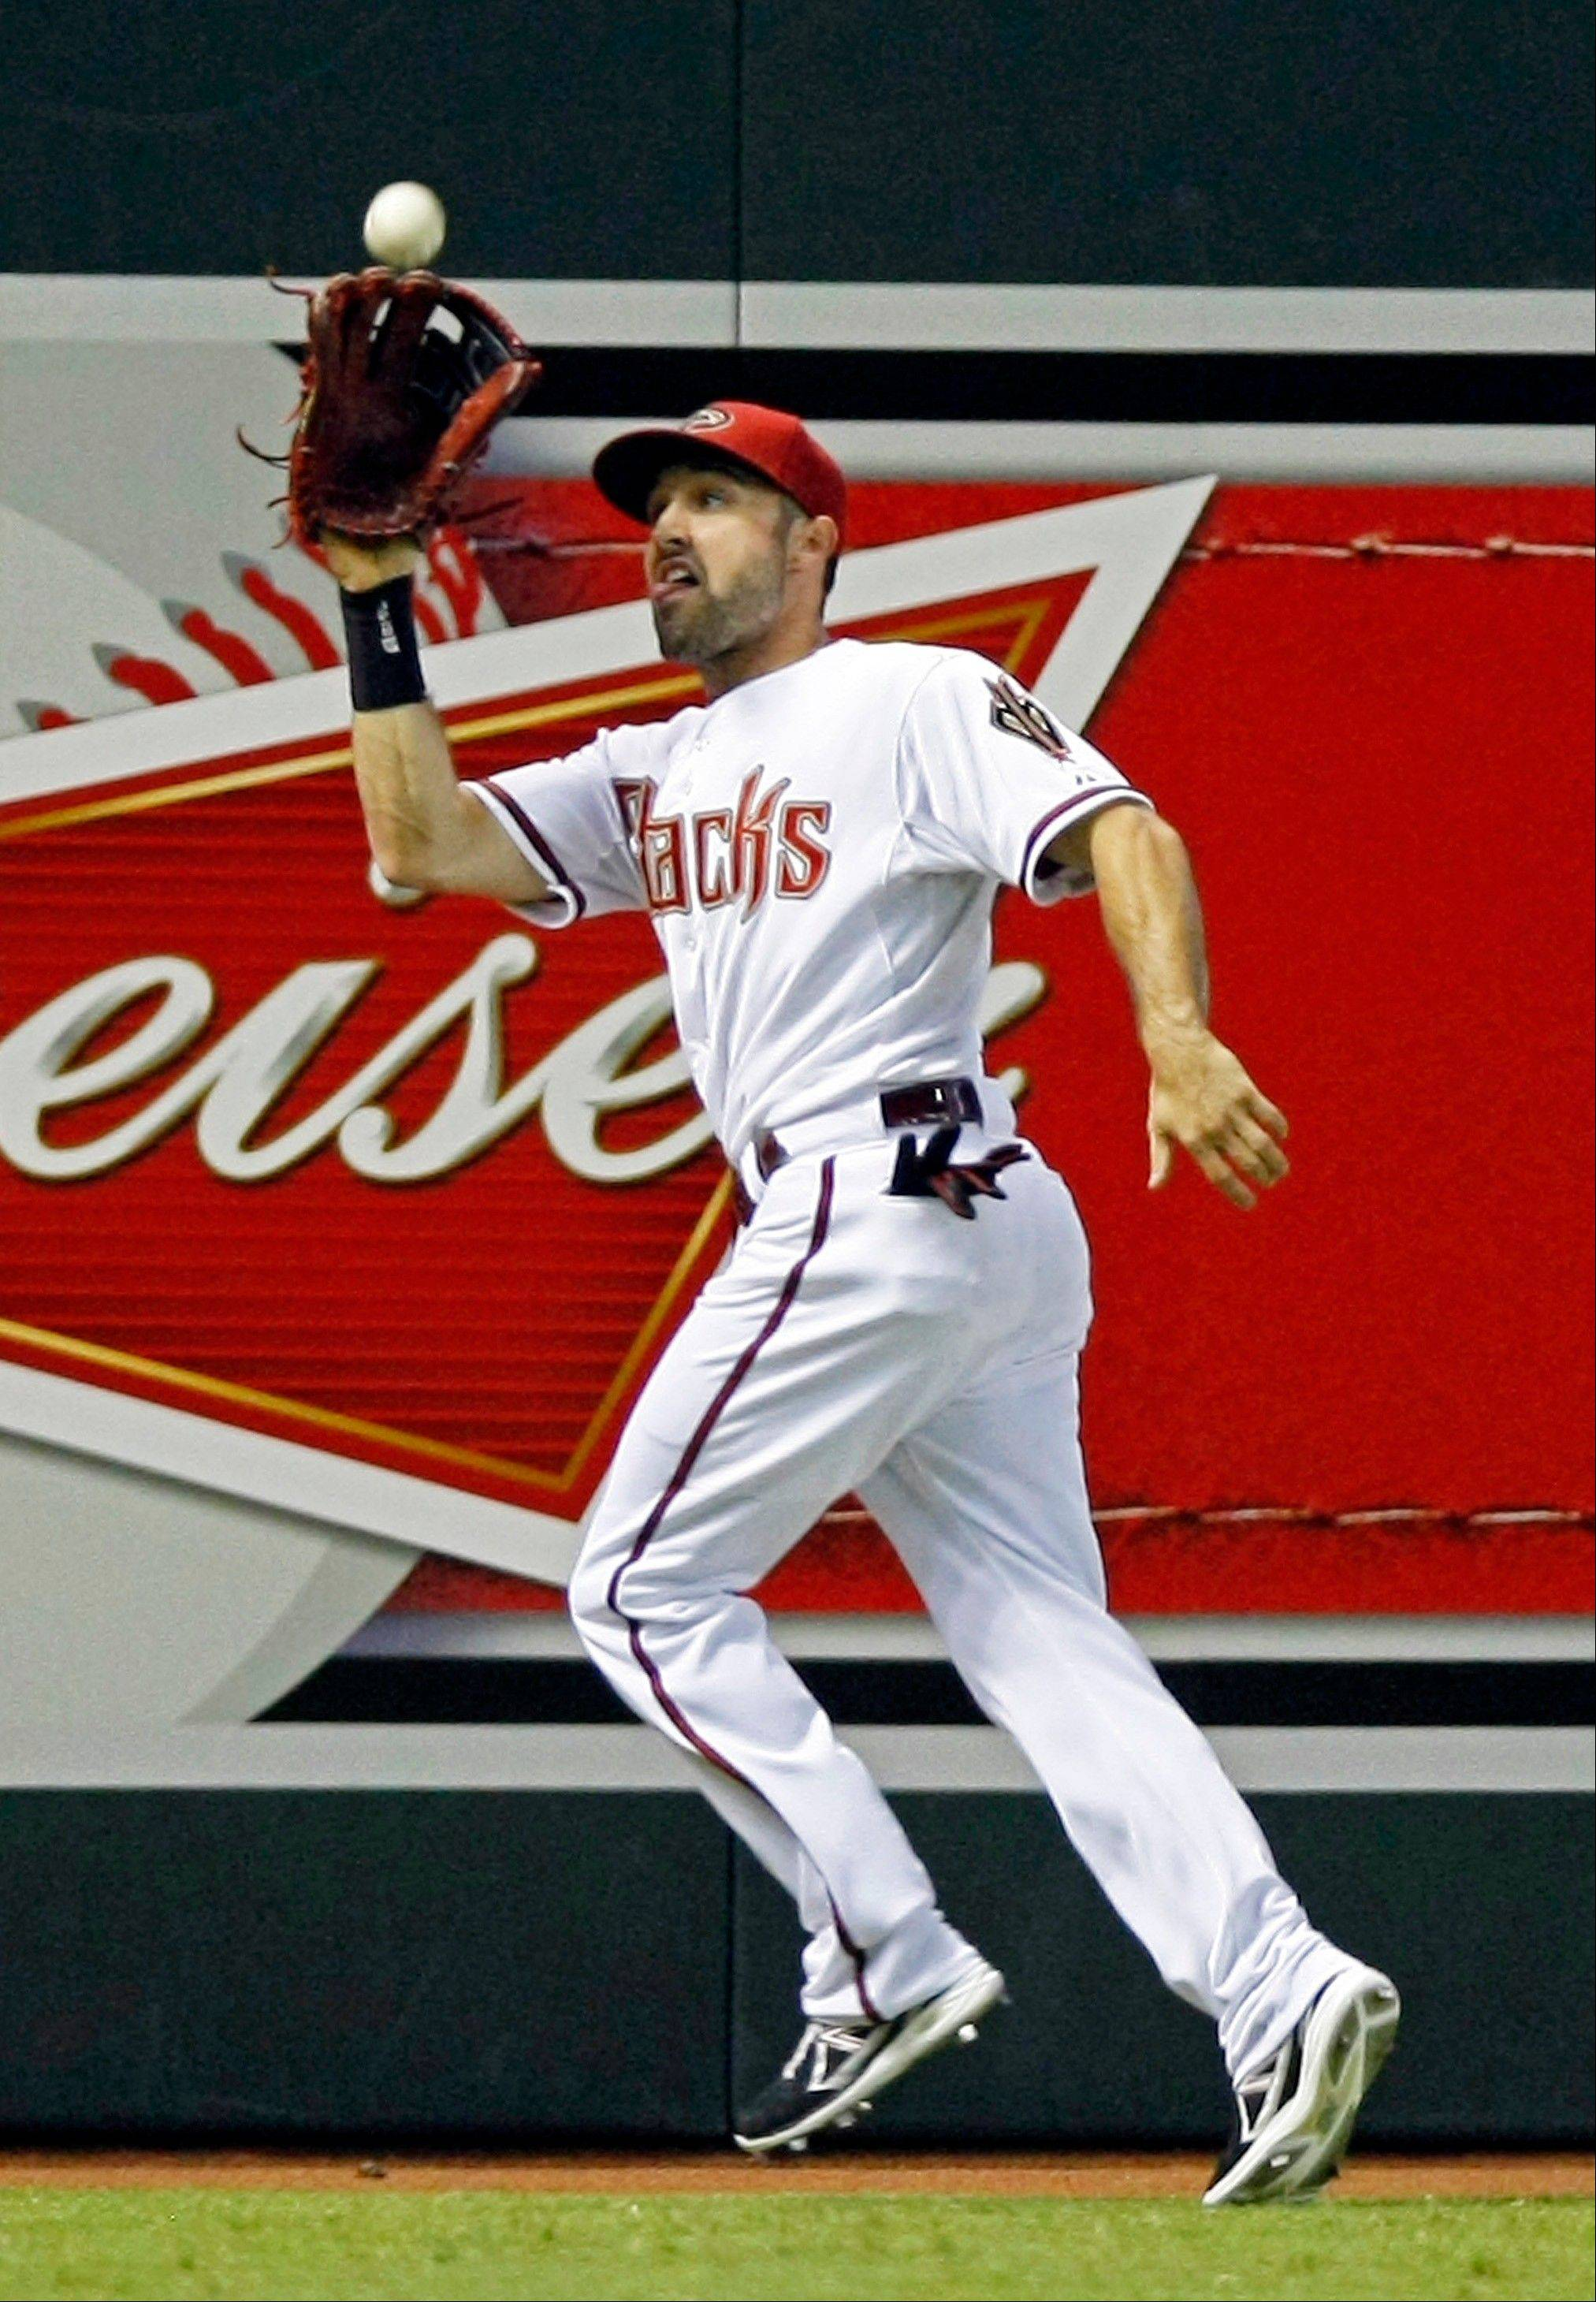 Left fielder Adam Eaton makes a running catch for the Diamondbacks against the Orioles in Phoenix.